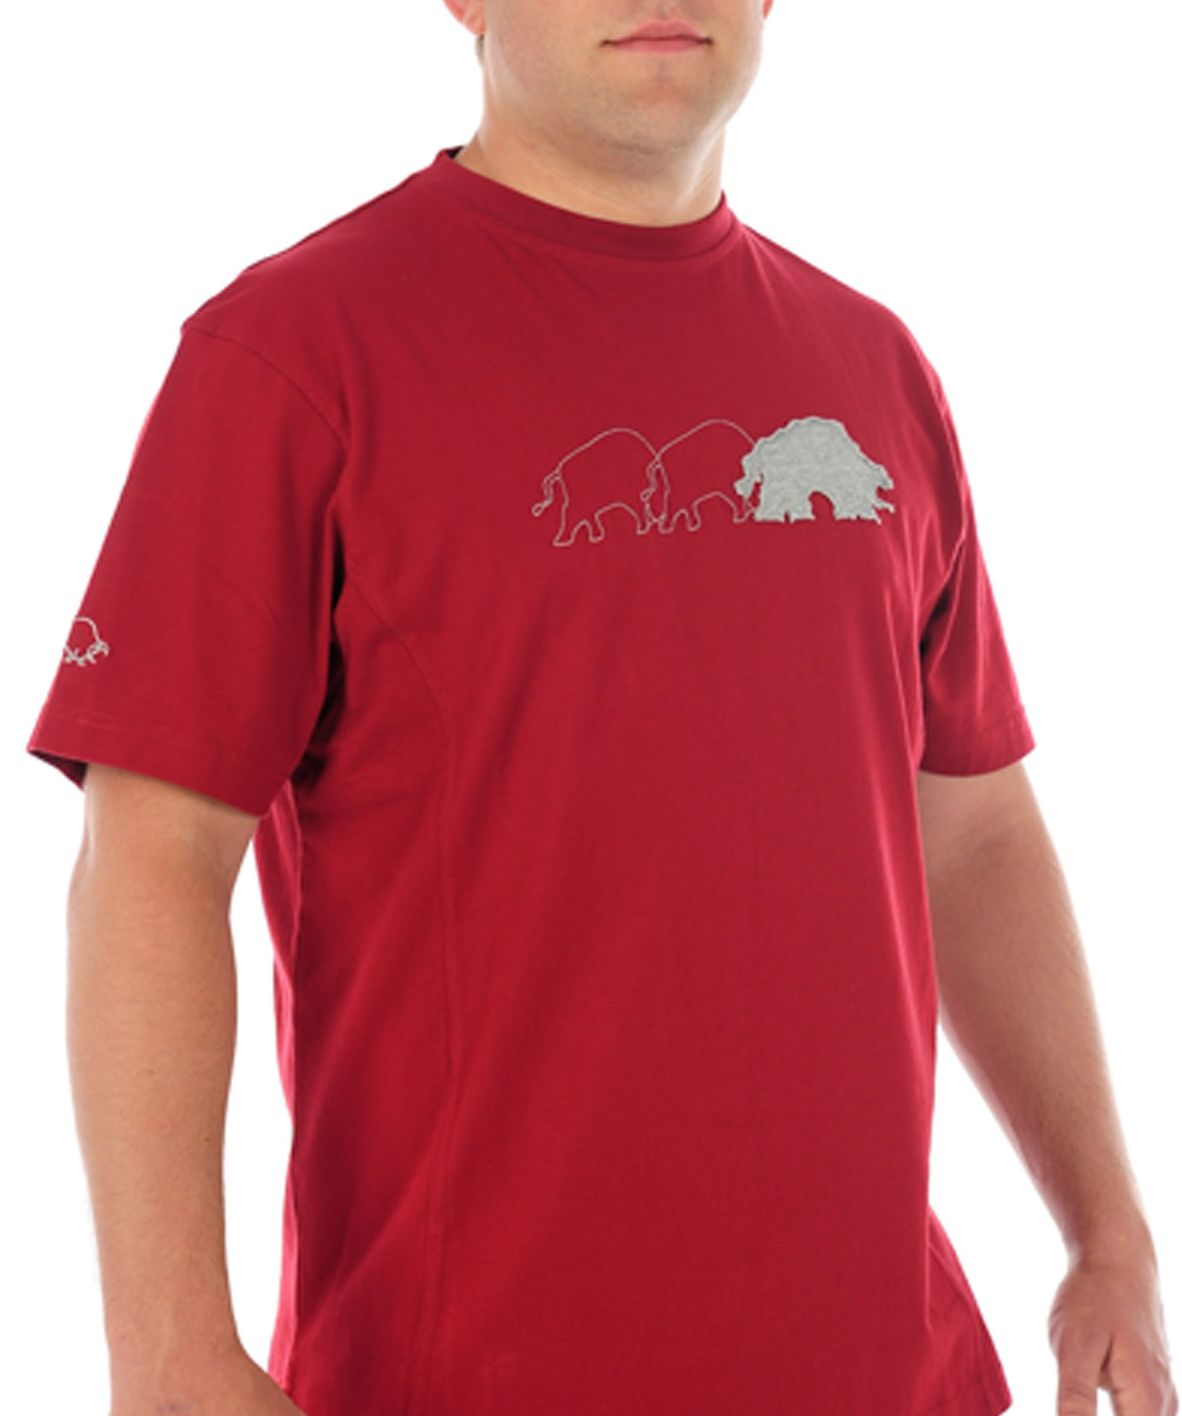 Raging Bull Stampede T-shirt, Wine 155396897 product image